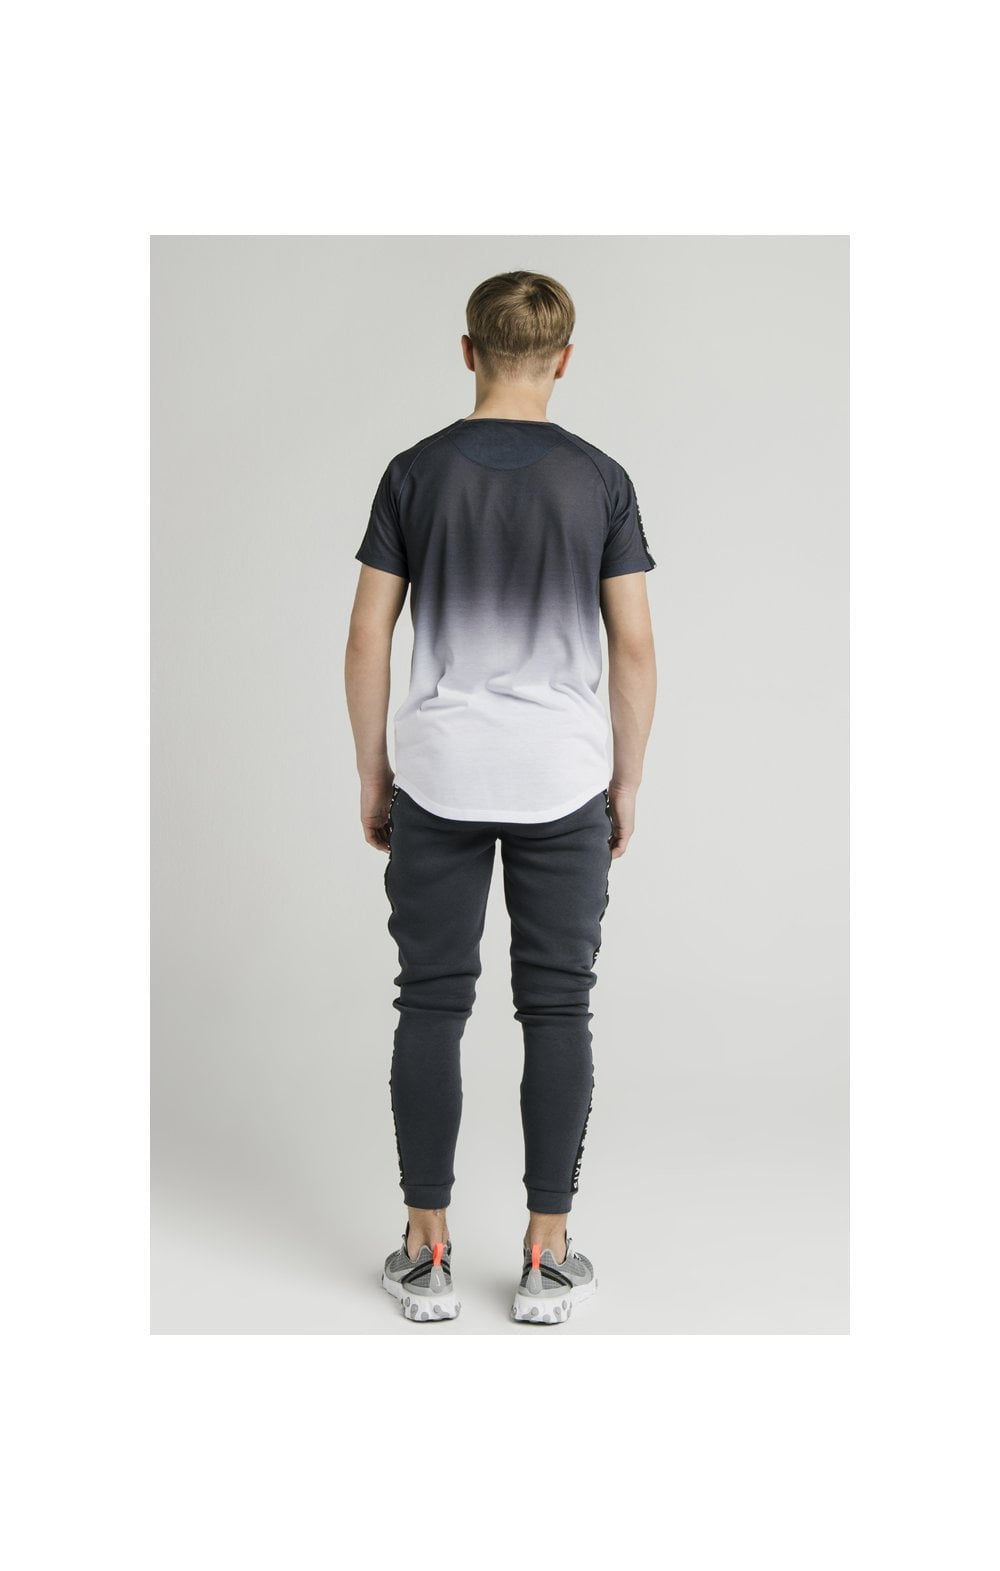 Load image into Gallery viewer, Illusive London S/S Fade Taped Tee - Grey & White (9)